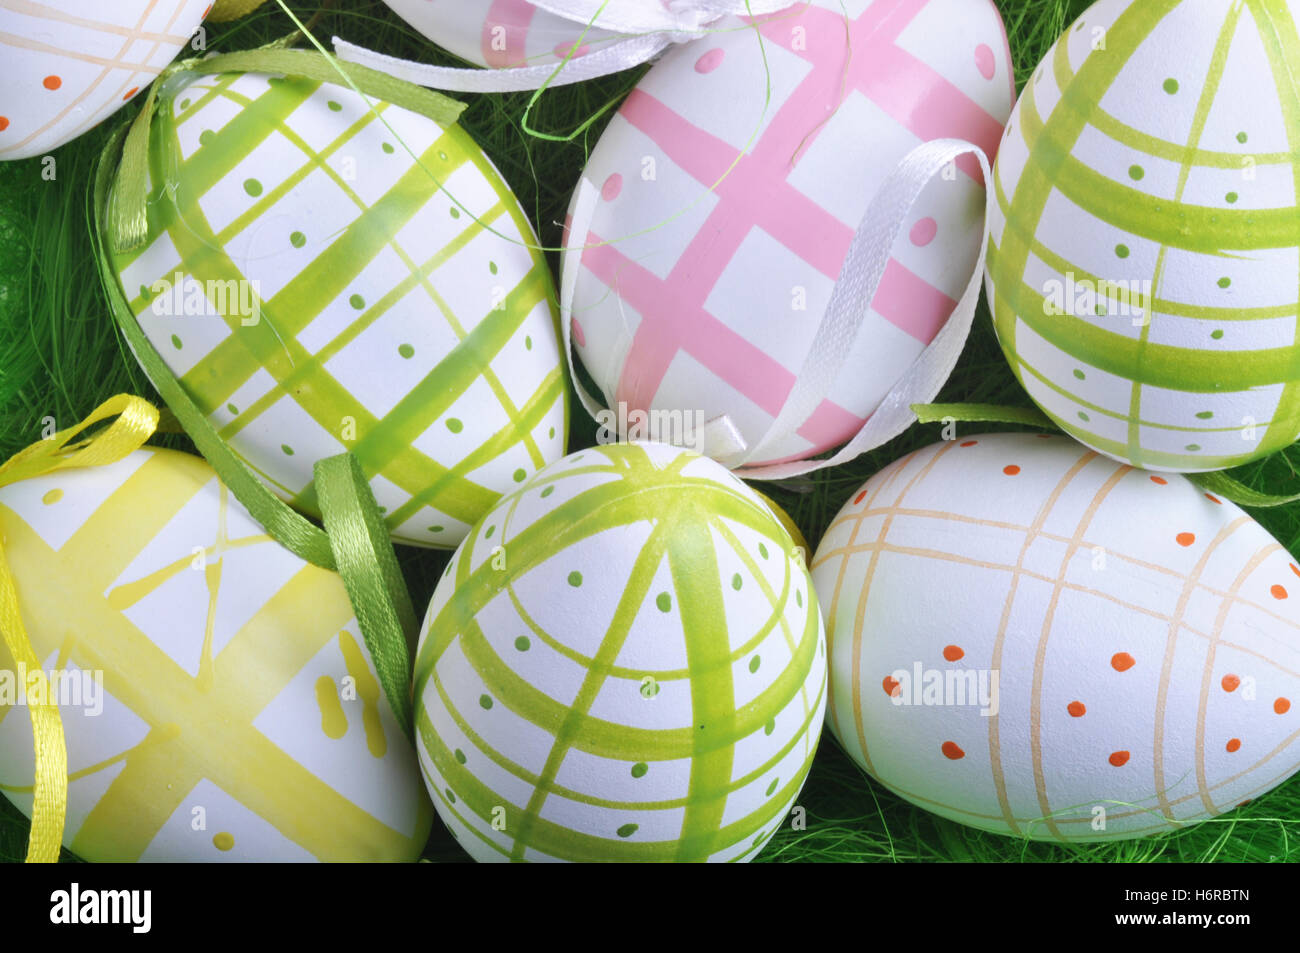 colour easter spring bouncing bounces hop skipping frisks jumping jump paint egg painted eggs meadow grass lawn - Stock Image